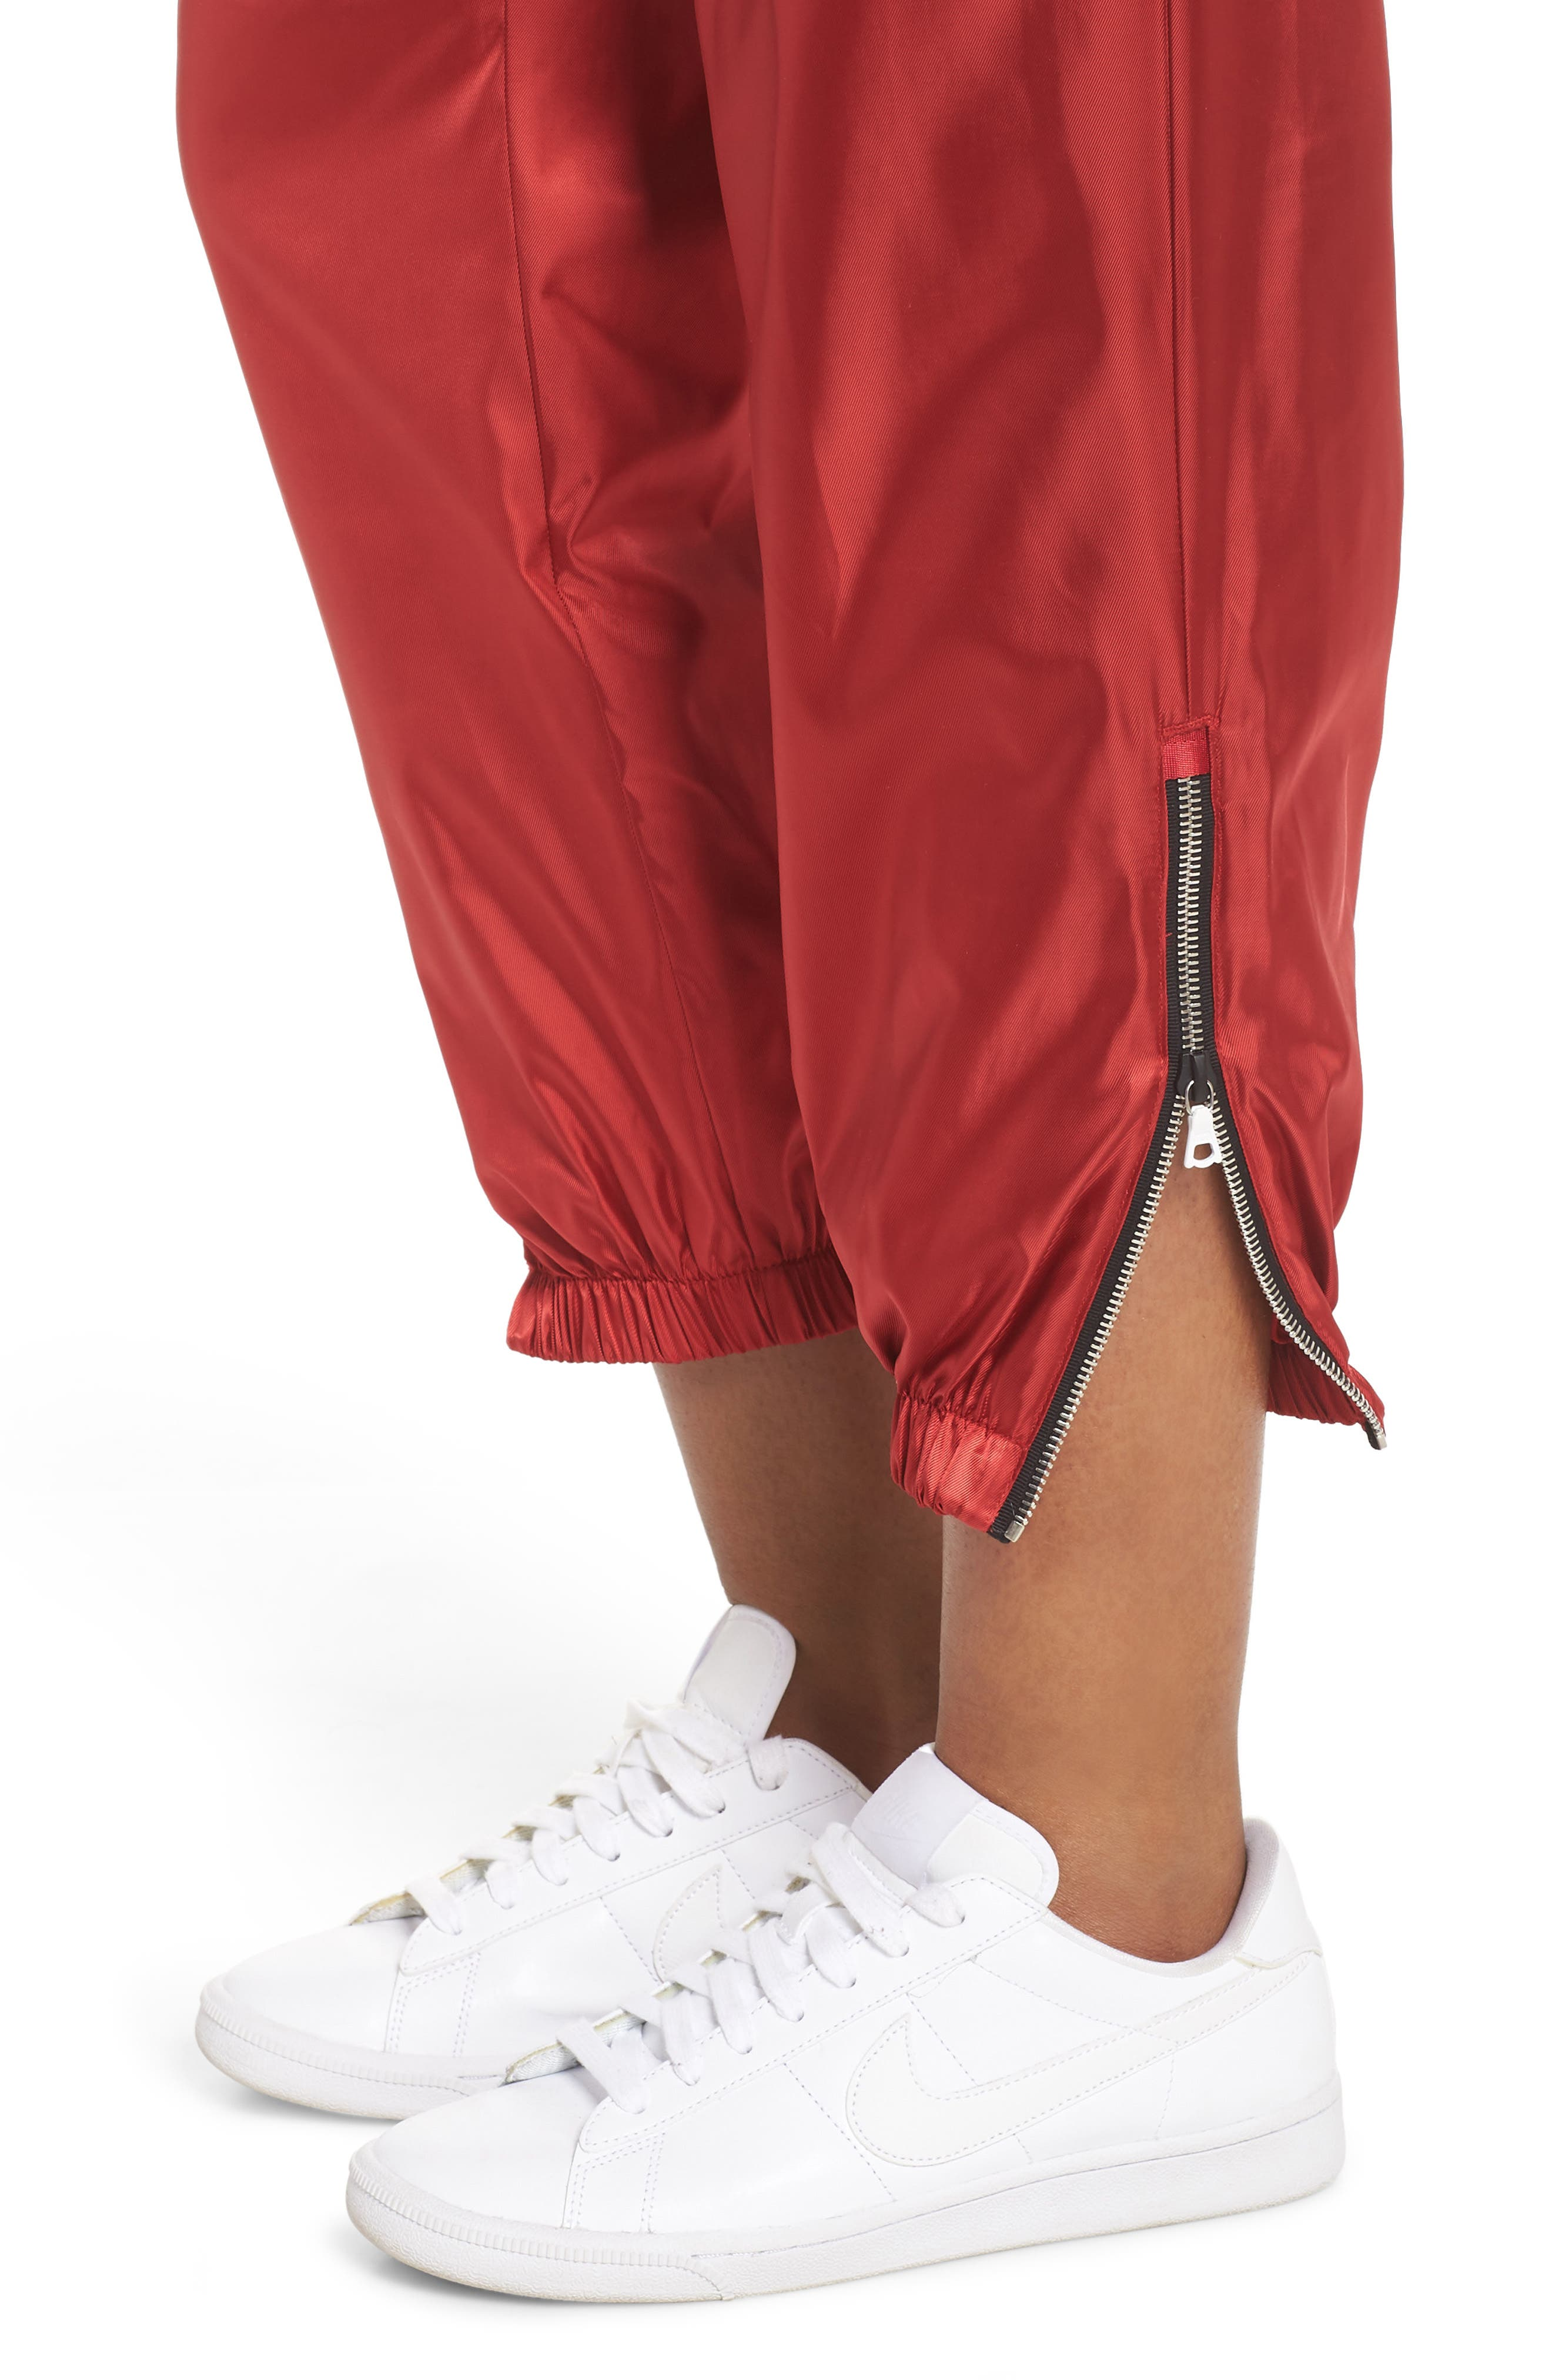 NikeLab Collection Women's Satin Track Pants,                             Alternate thumbnail 4, color,                             Gym Red/ Black